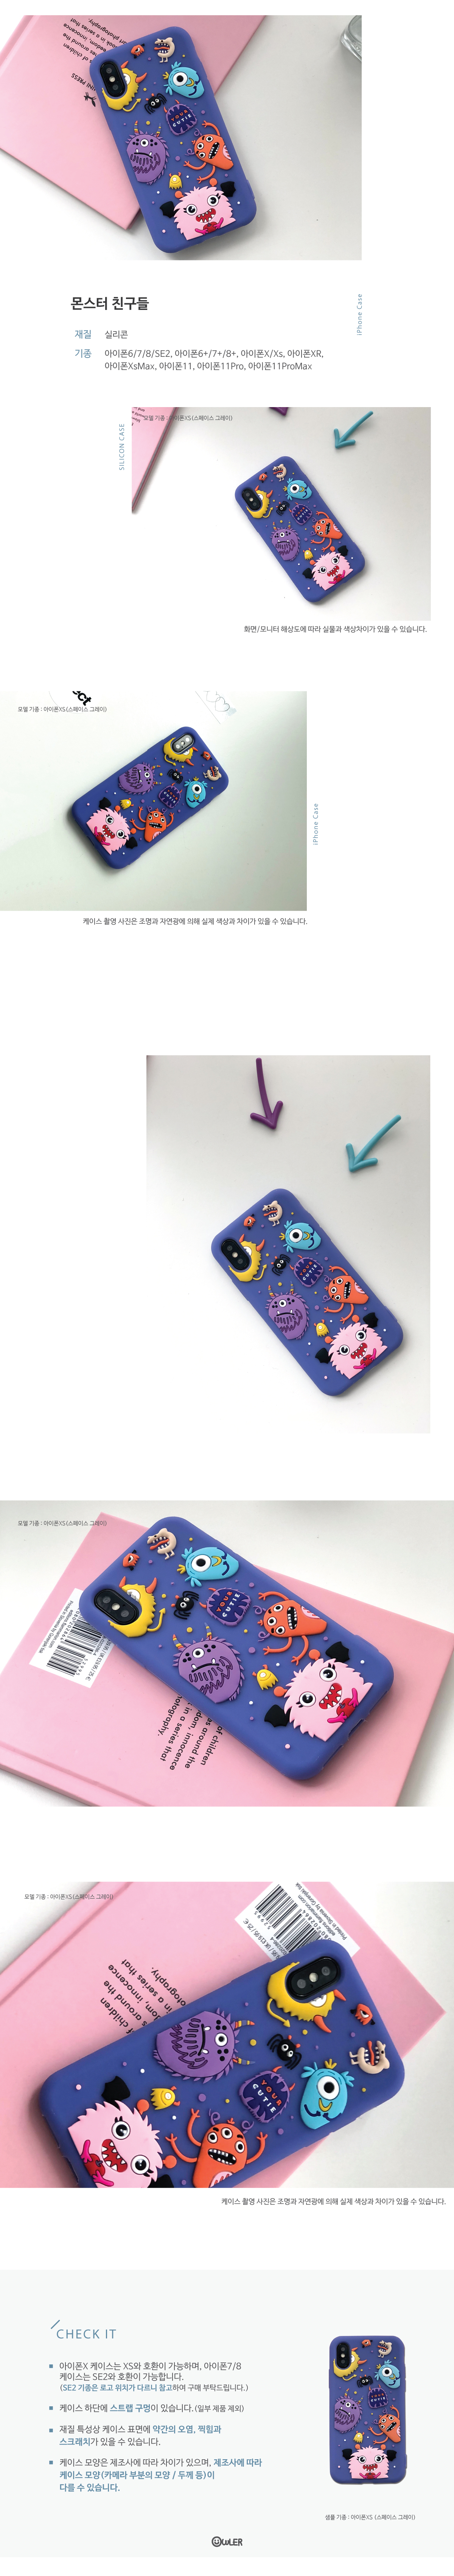 Monster Friends Silicone iPhone Case